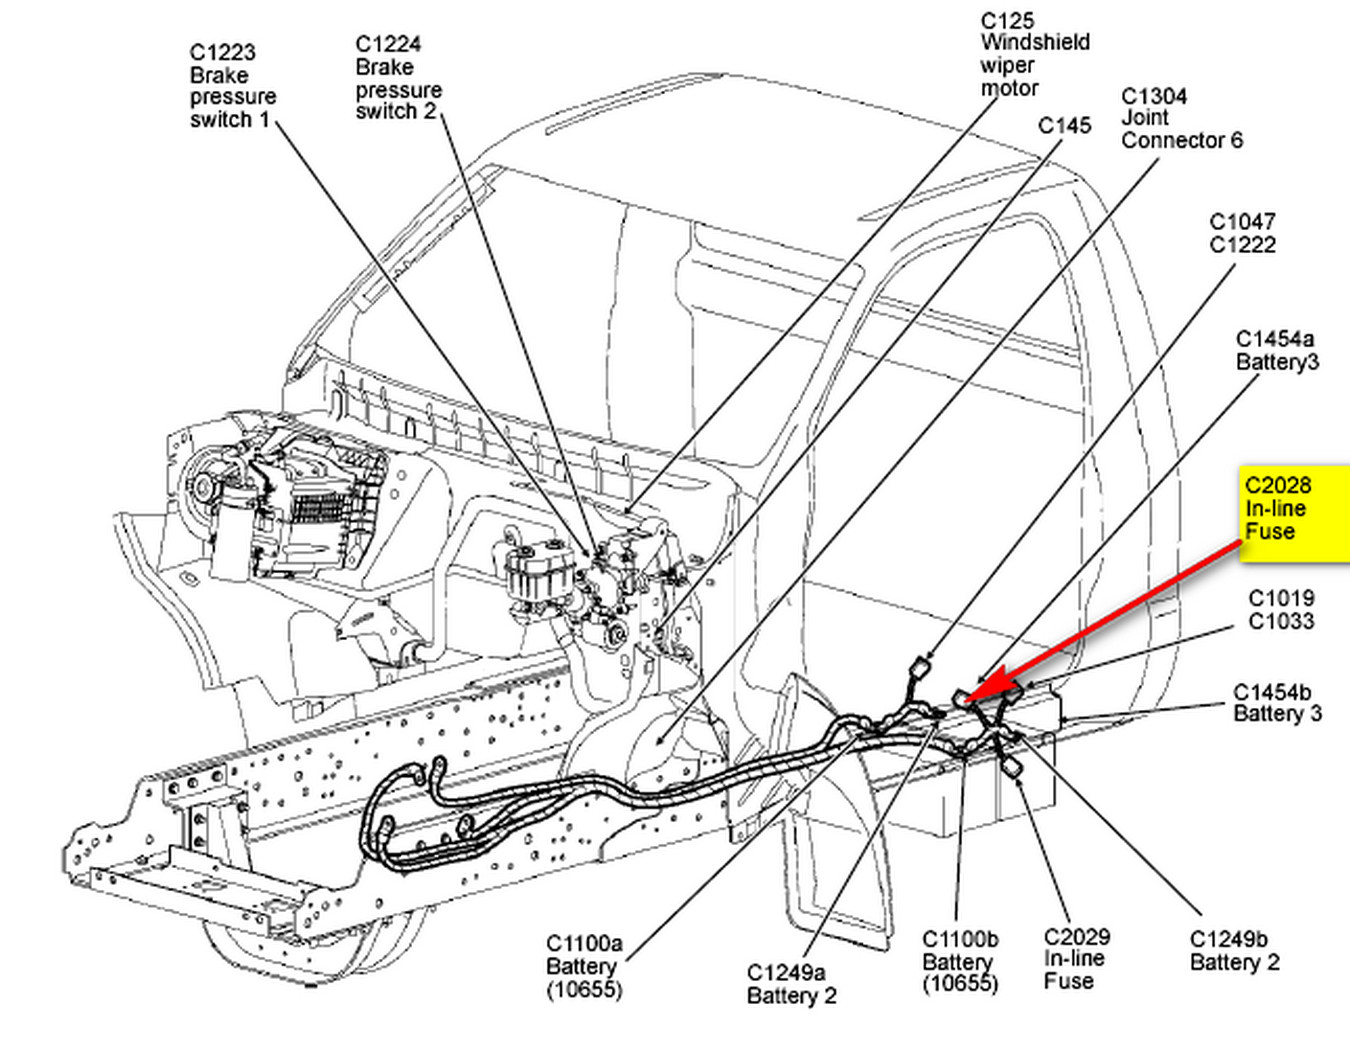 Fuse Diagram F750 Cat Reinvent Your Wiring 2012 Ford F53 We Have A F650 2008 Model With Engine C7 No Rh Justanswer Com Types 2011 Ranger